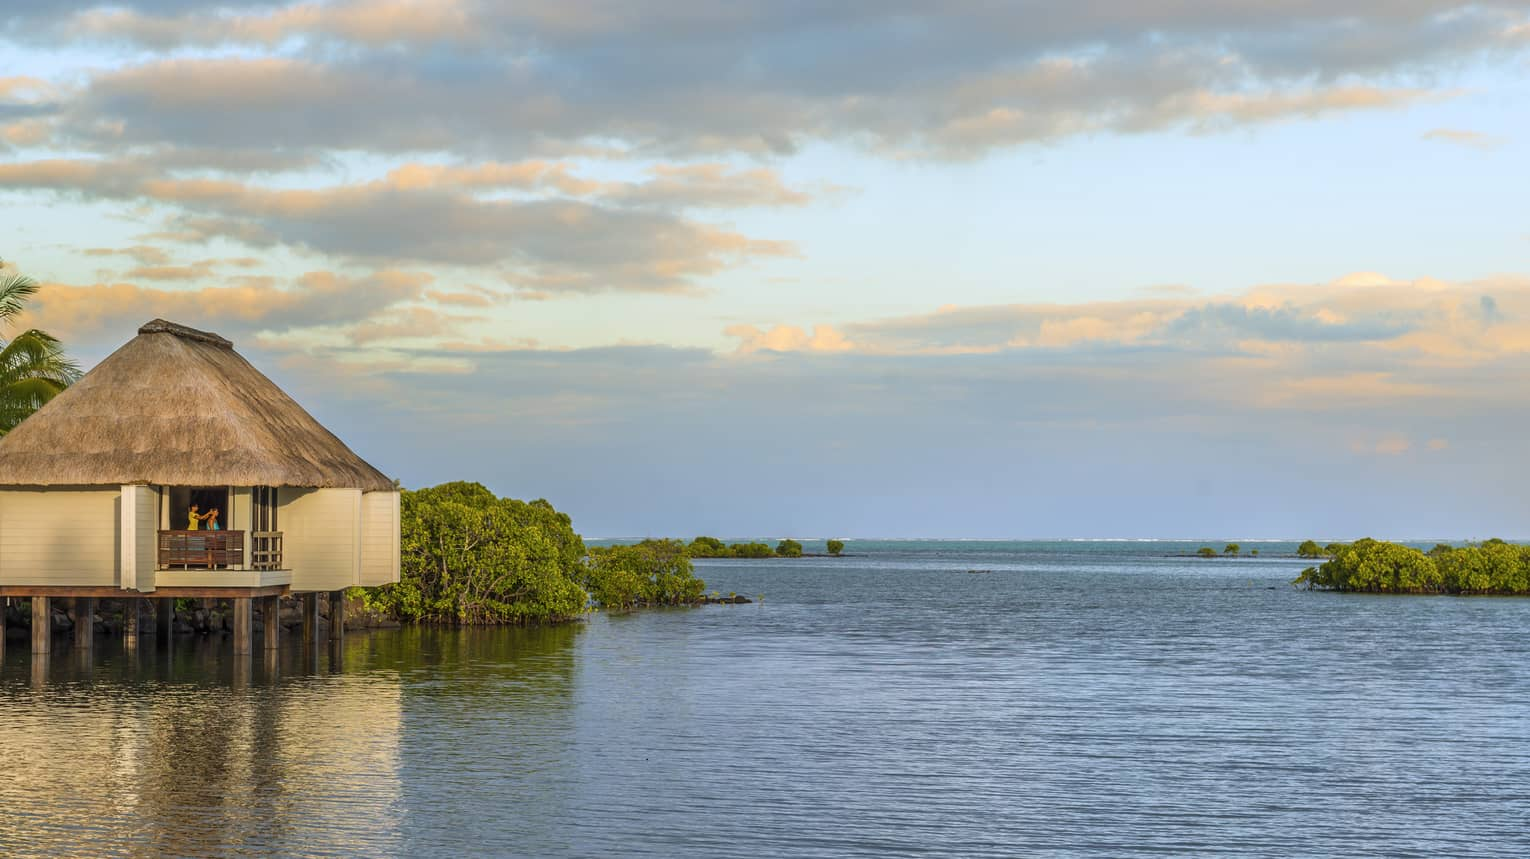 Overwater spa villa with thatched roof at sunrise